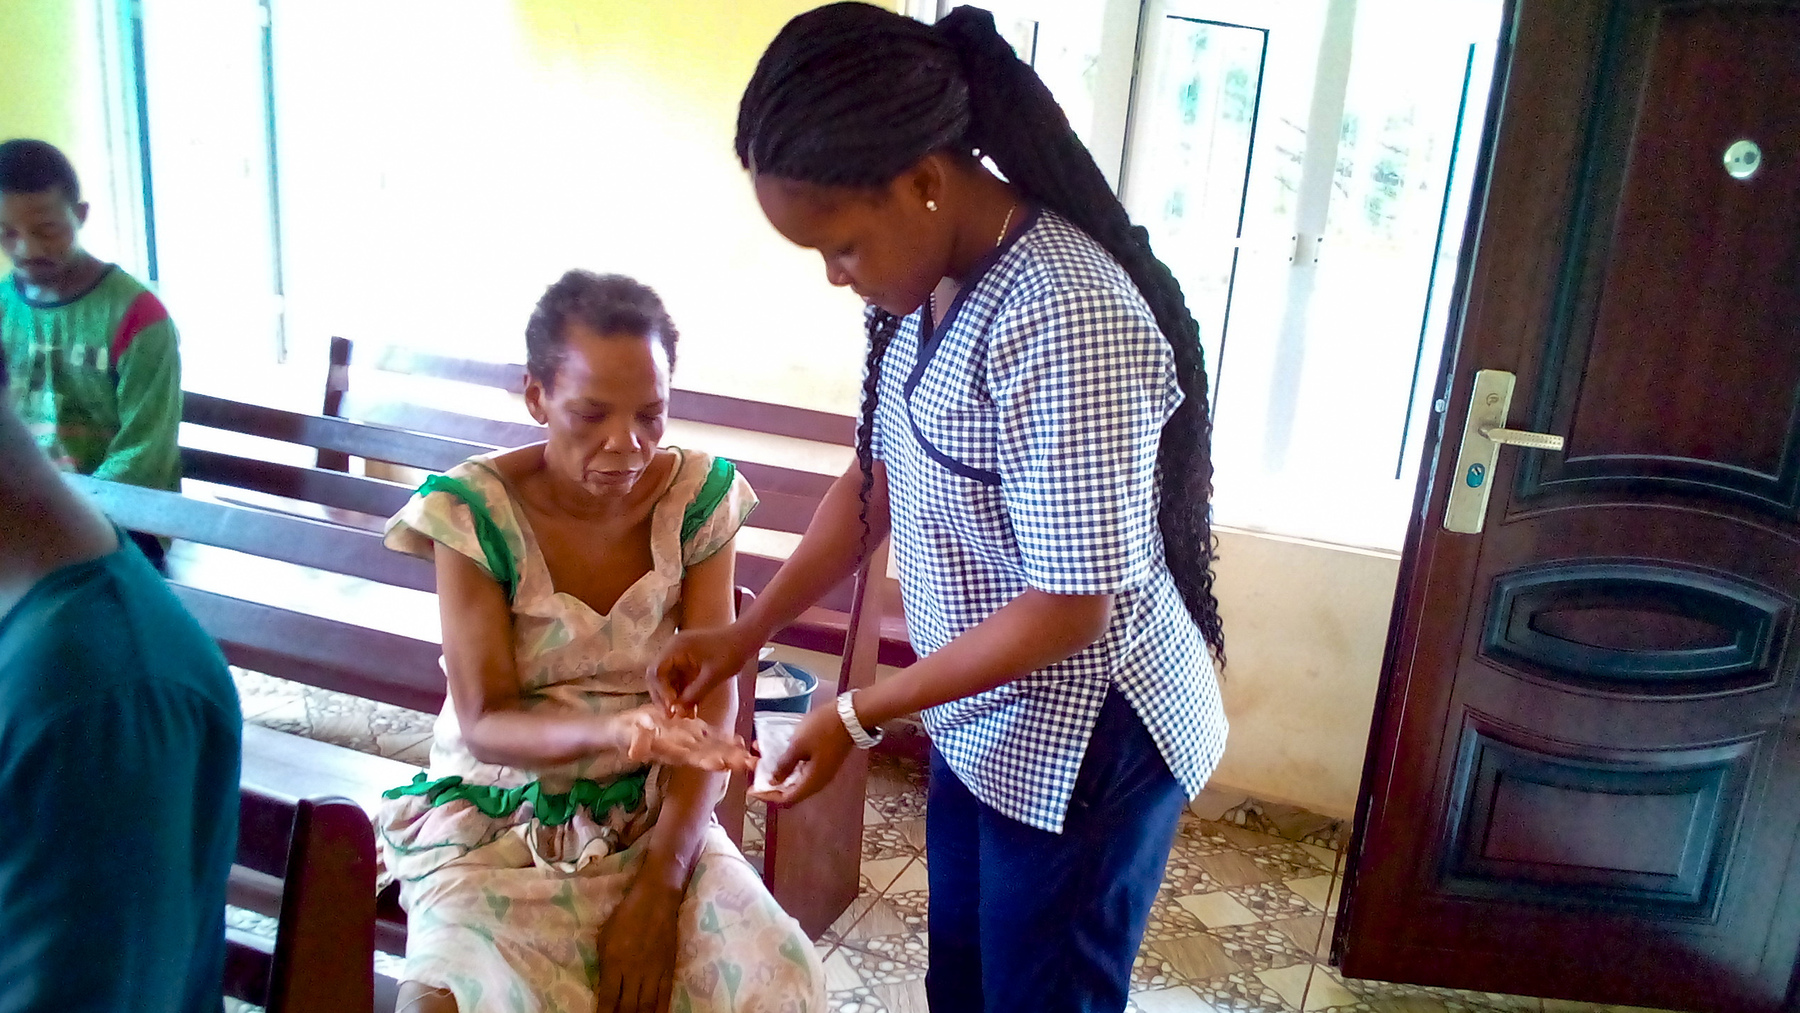 Those people : Mental health care in Nigeria